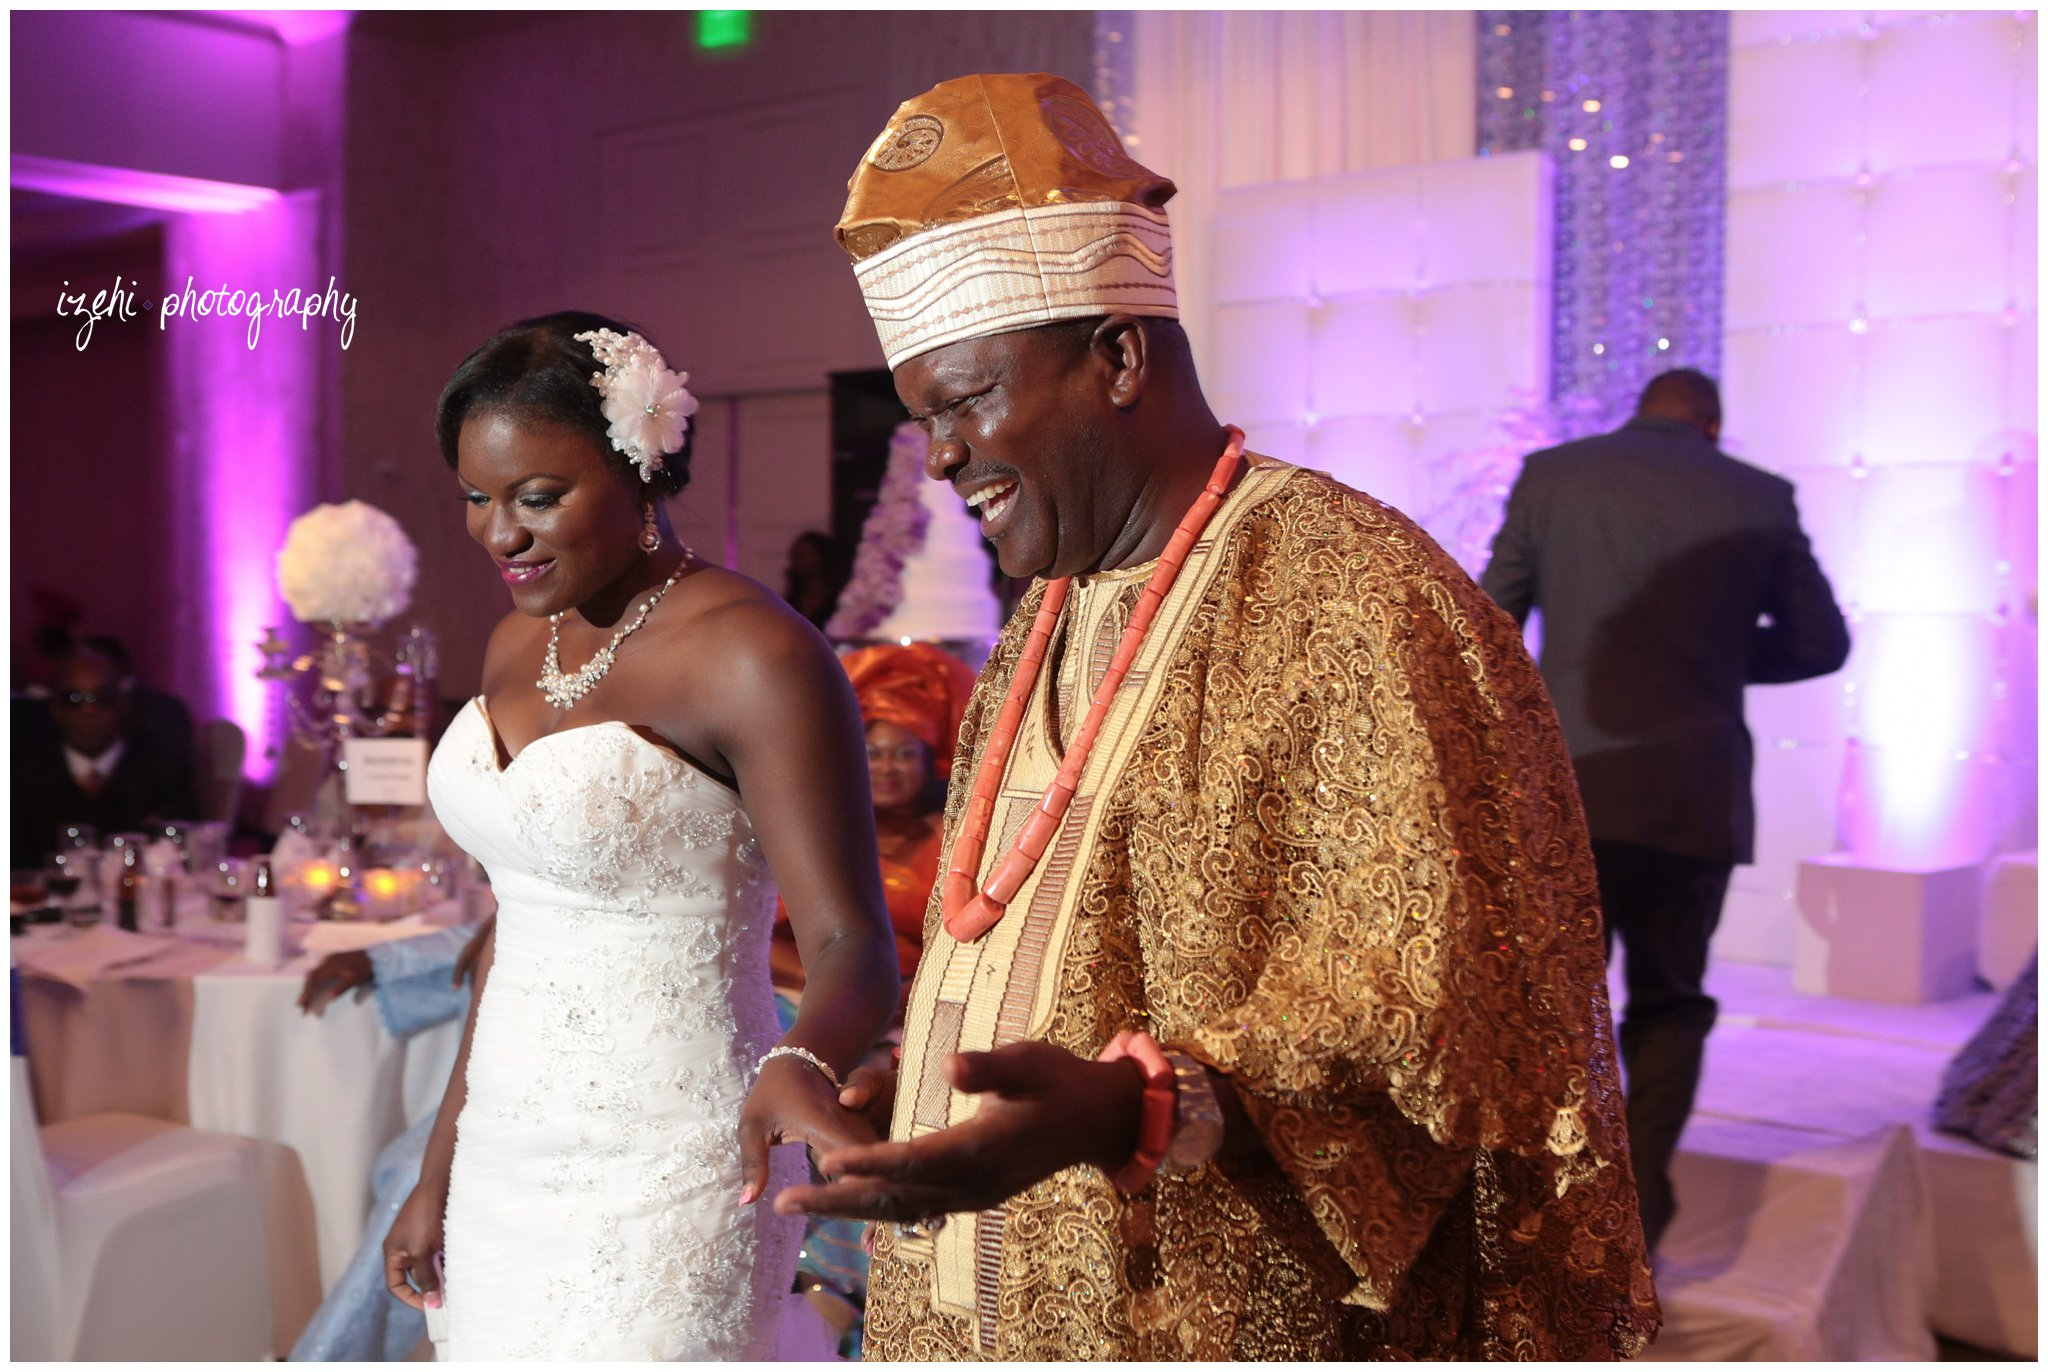 Izehi Photography Nigerian Weddings Okosun-102.jpg